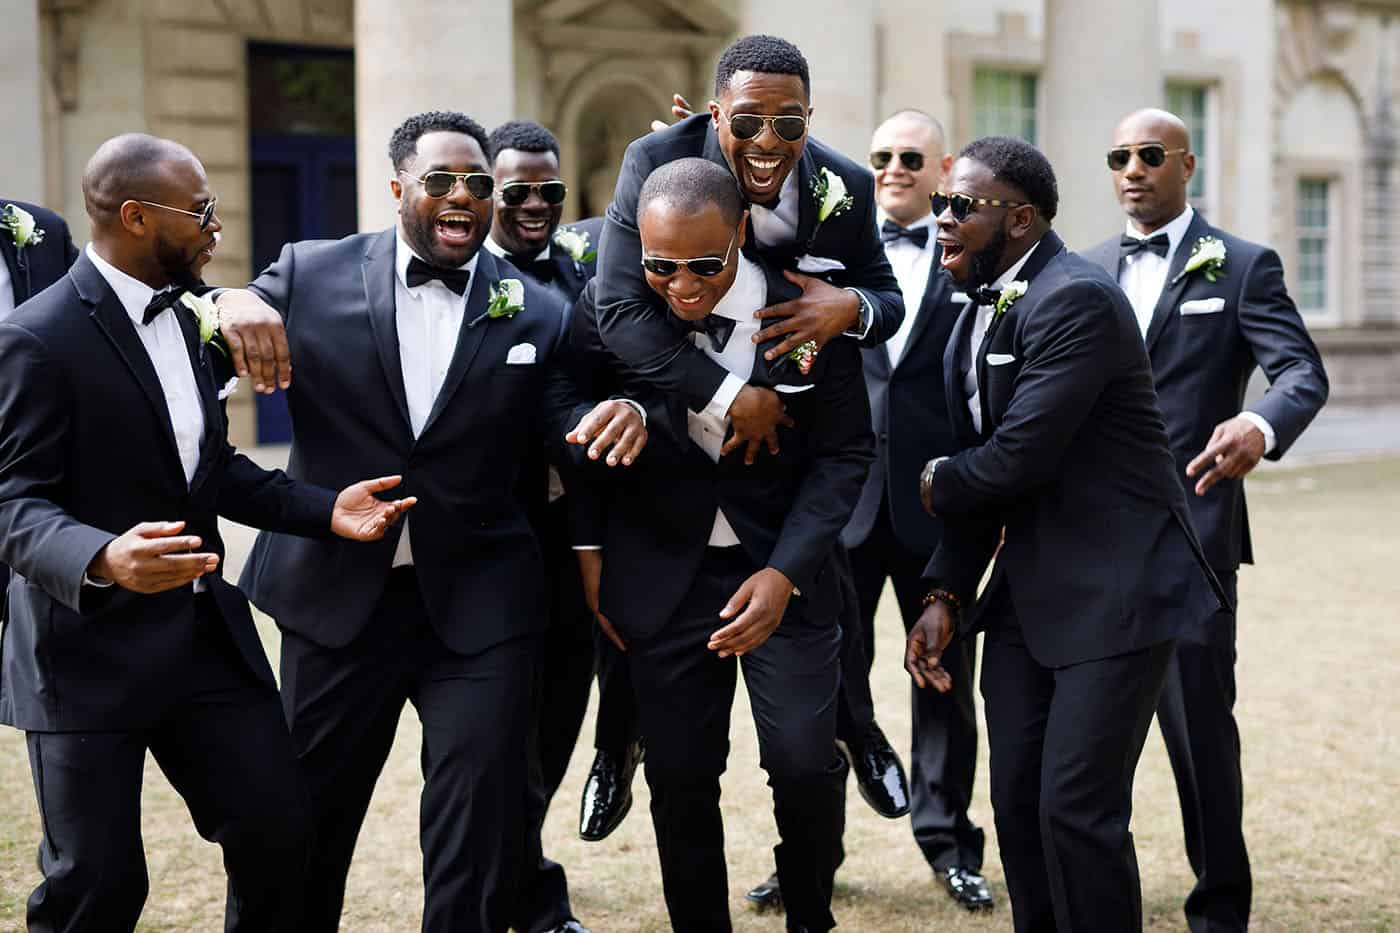 This is the Key to Amazing Client Relationships | A throng of groomsmen in black tuxes horseplay in the courtyard of a beautiful hotel.